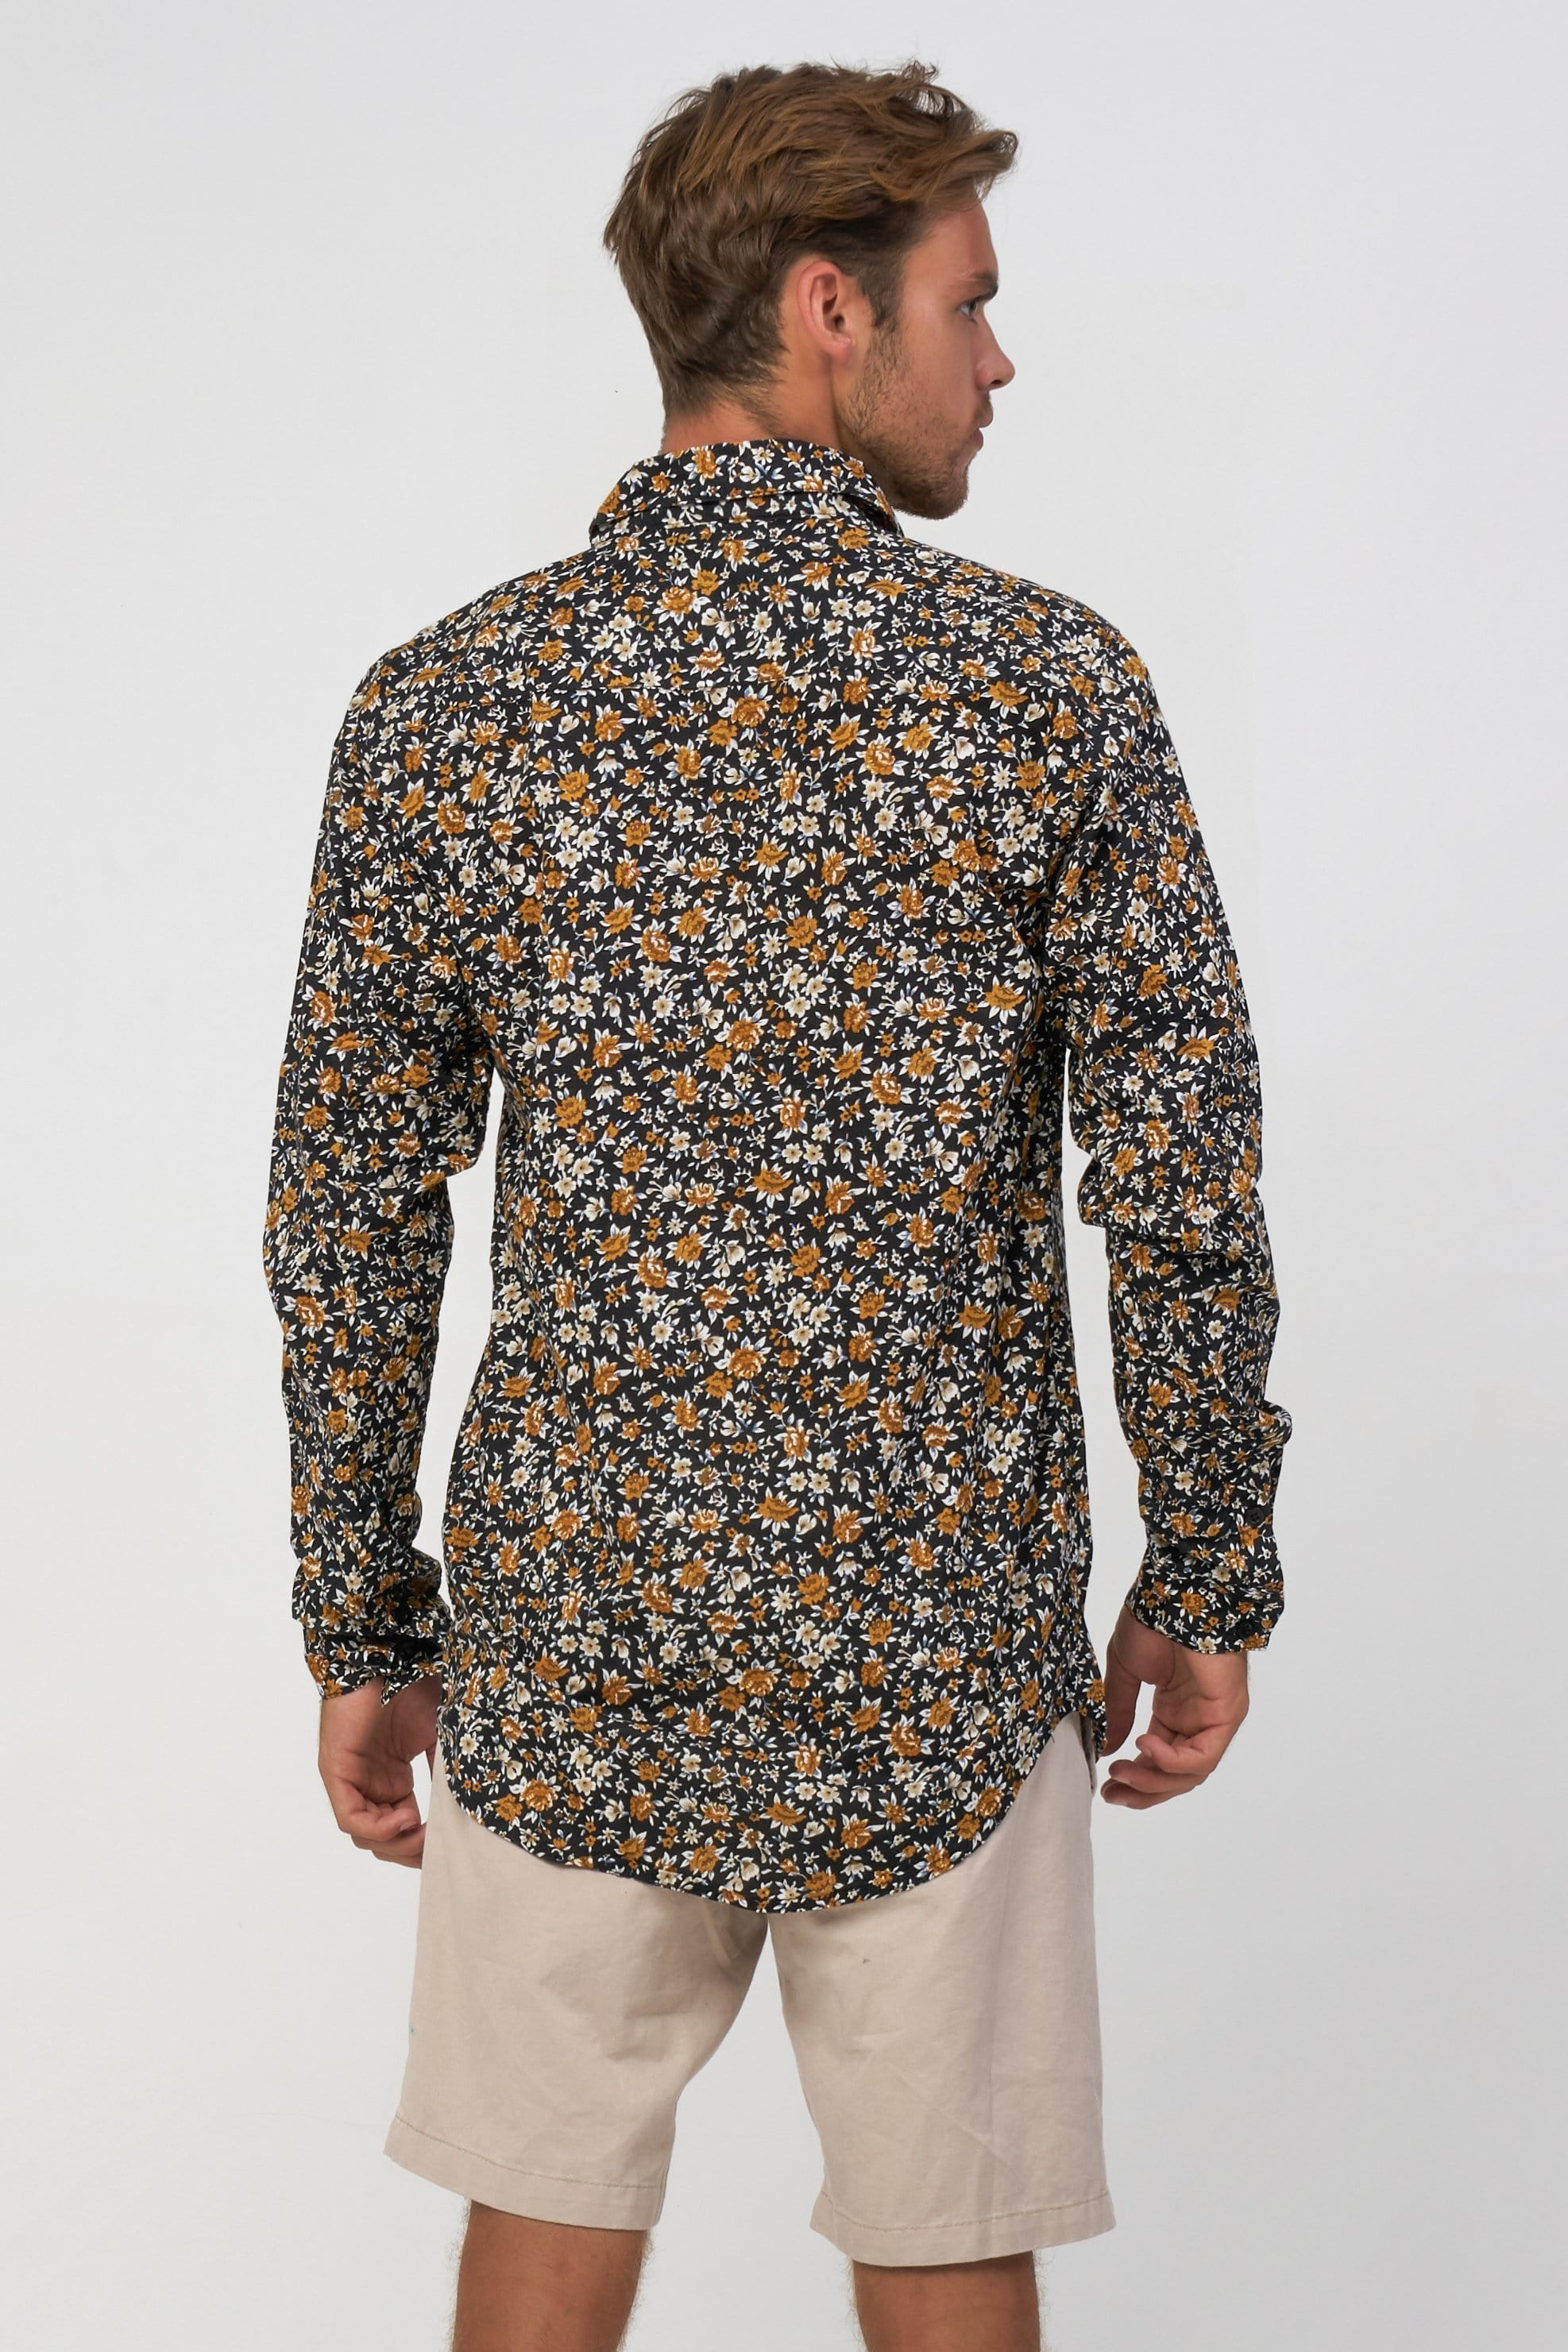 Flower Shirt - Man Shirt - LOST IN PARADISE